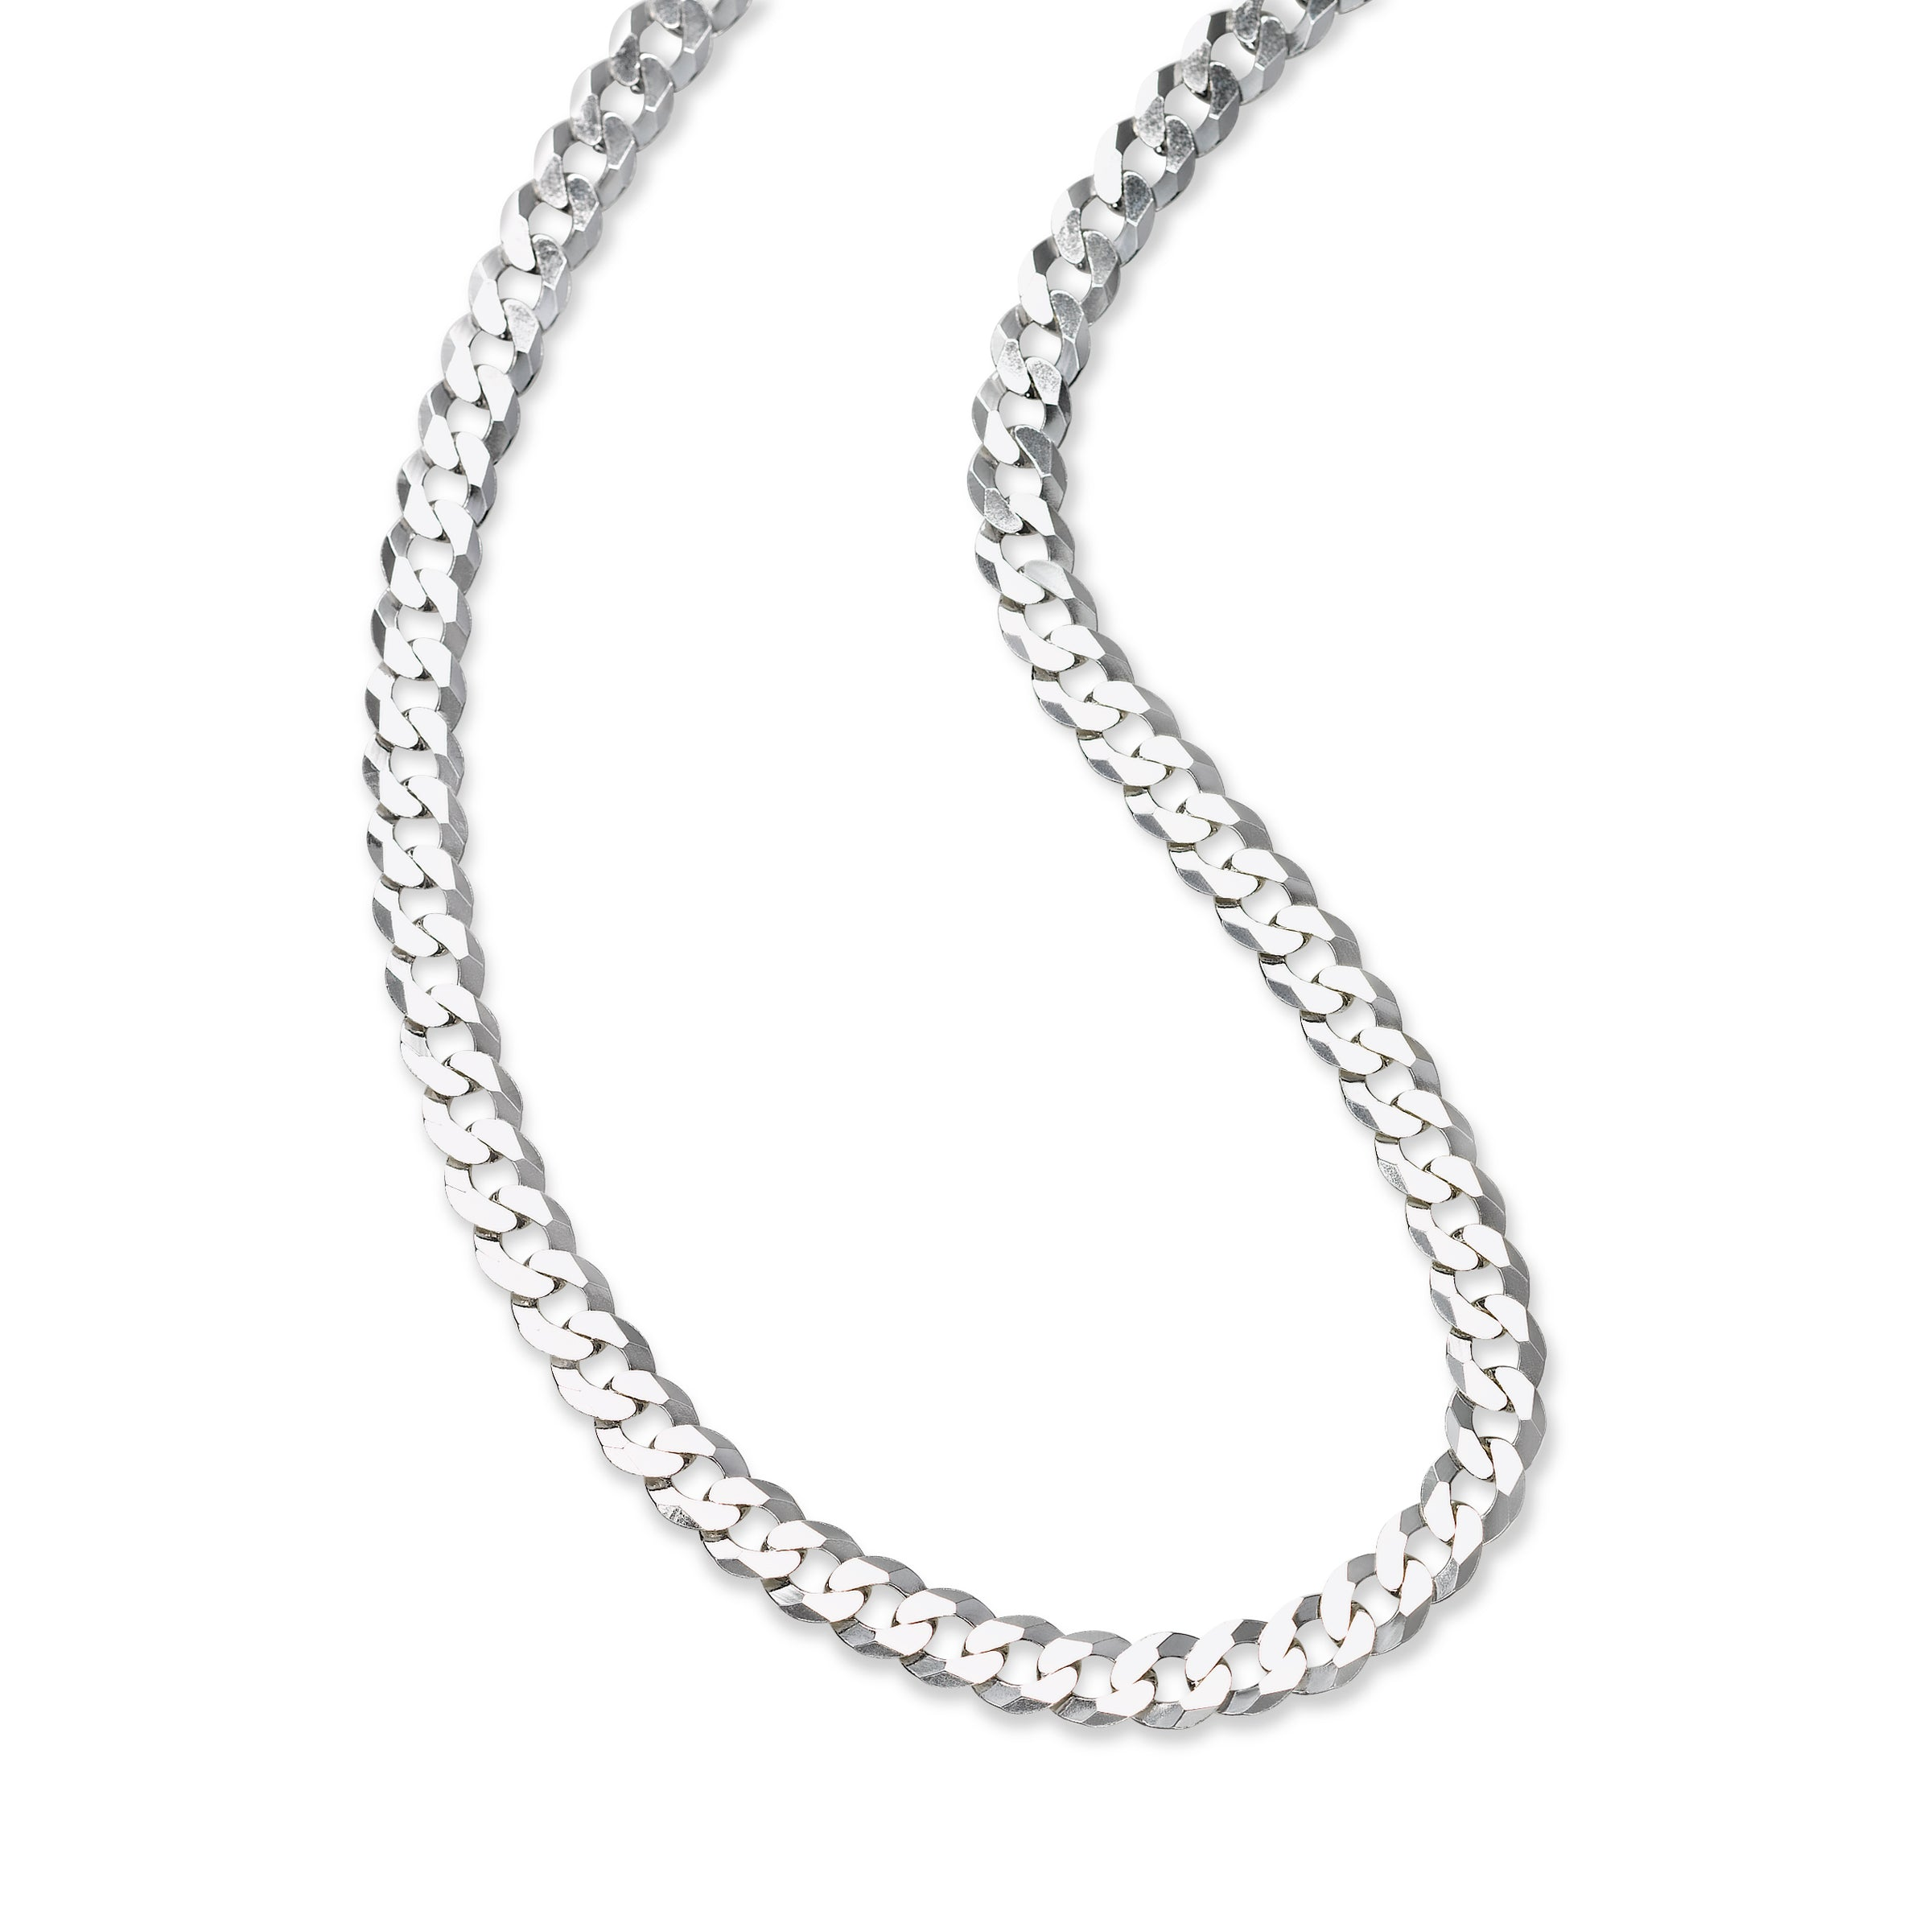 a296e6c92e338 Flat Curb Chain Necklace, 22 Inches, Sterling Silver